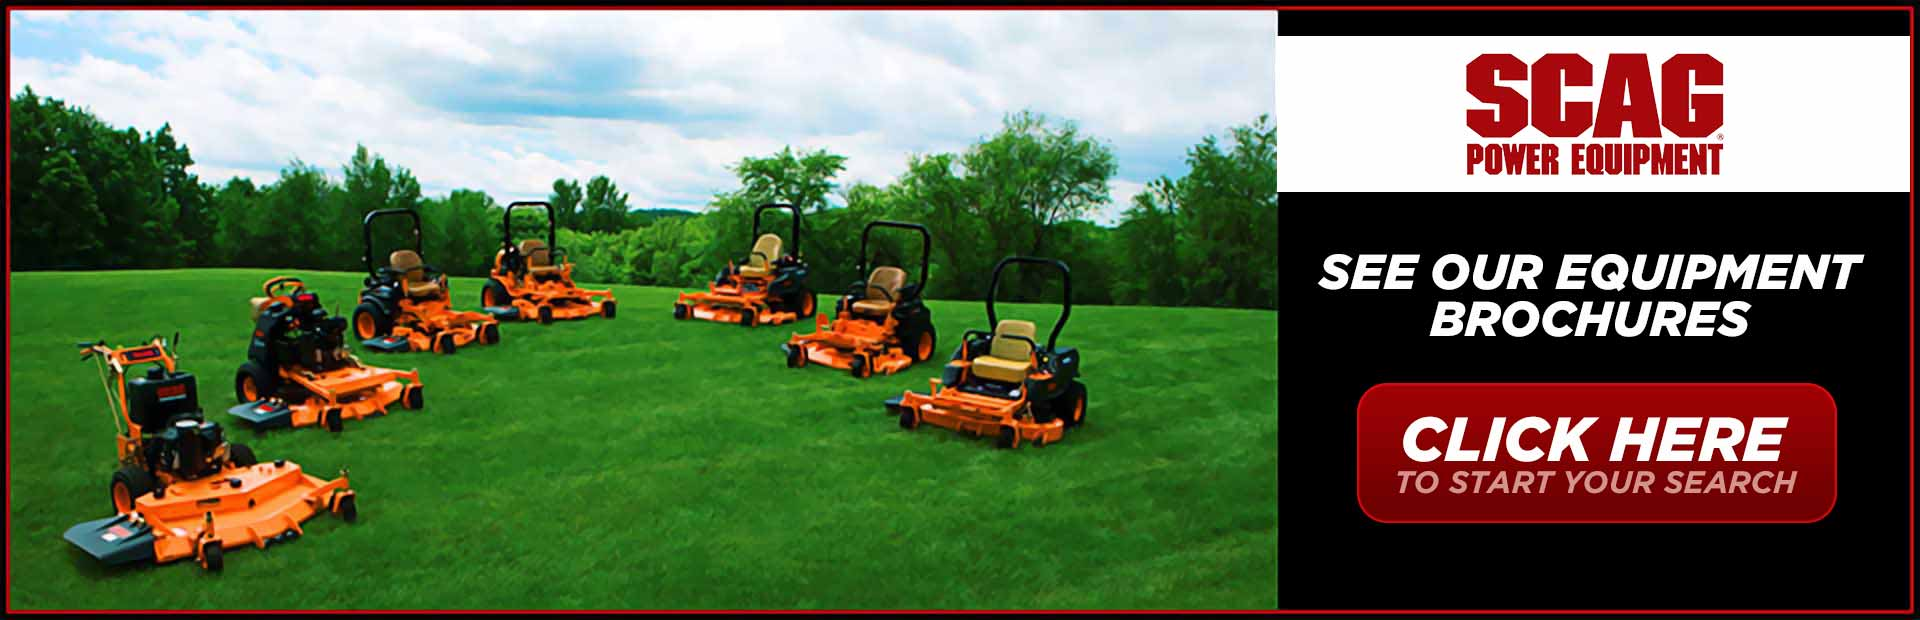 Scag Power Equipment: Click here to view our equipment!